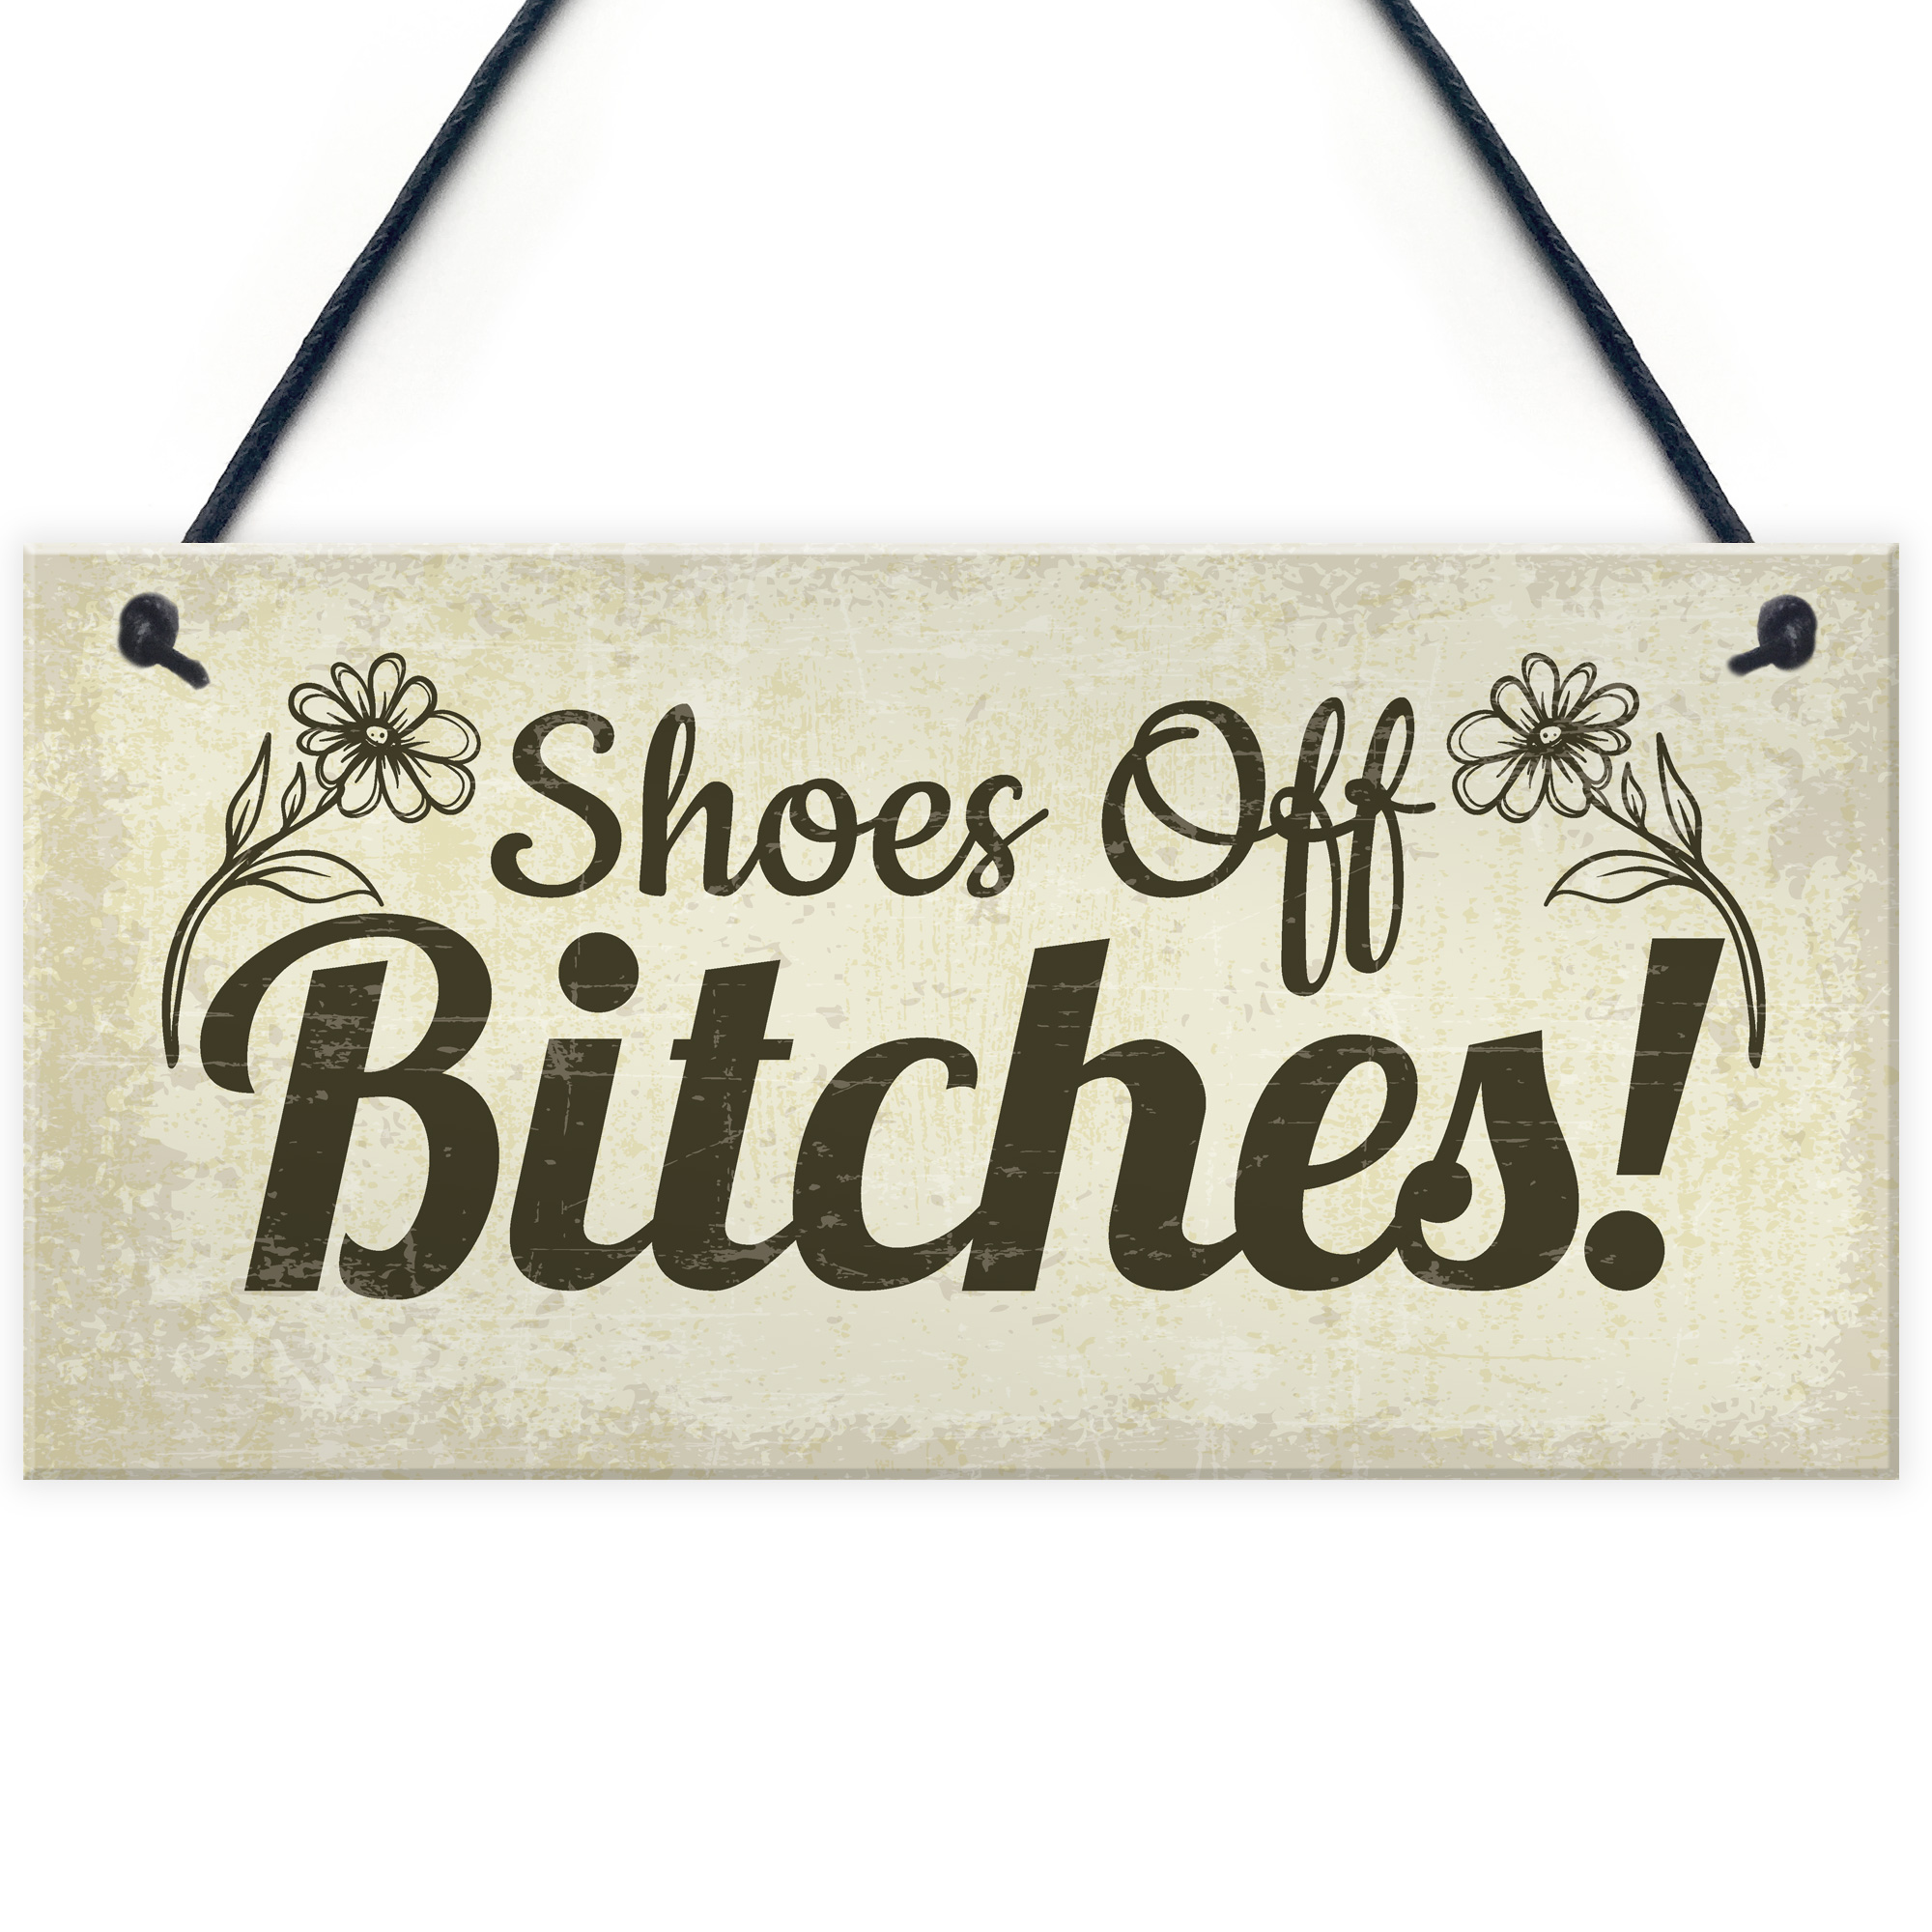 64a49de0ada5d Details about Funny Take Your Shoes Off Sign Welcome Hanging Plaque House  Porch Decor Gifts